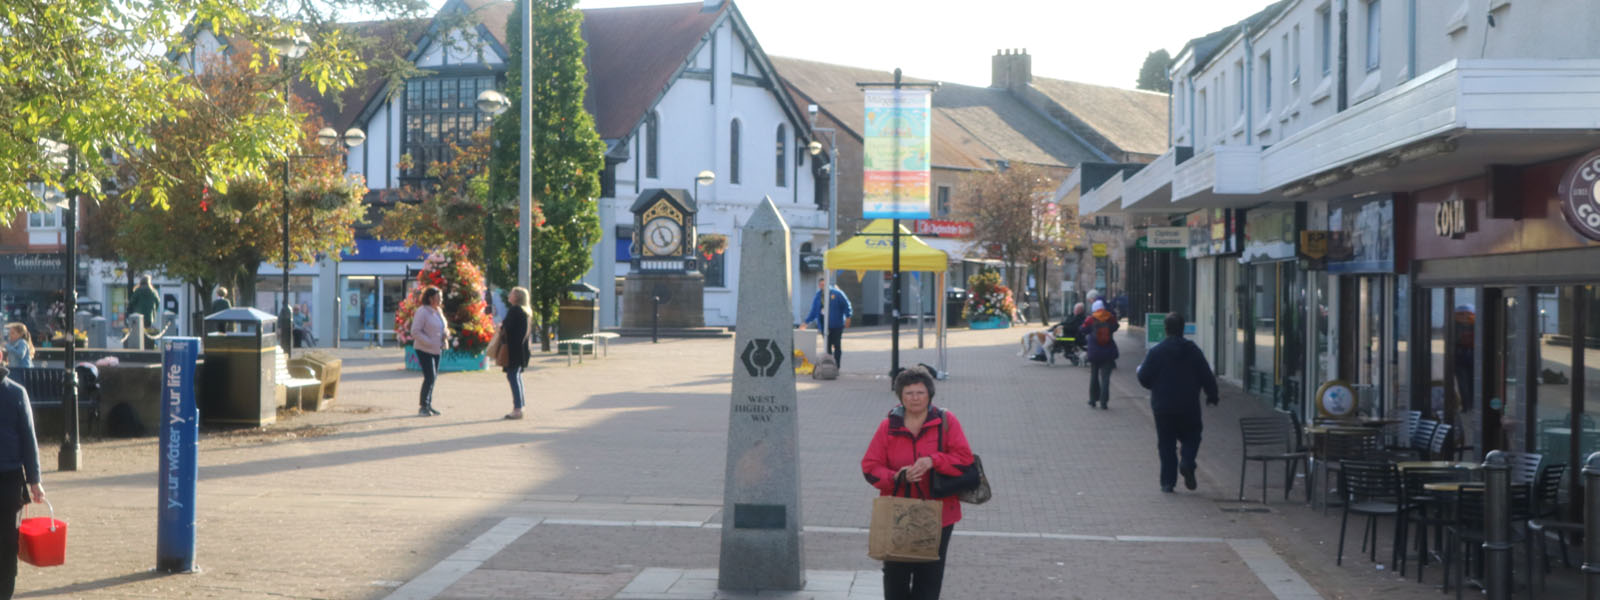 Milngavie in vote for Most Beautiful High Street